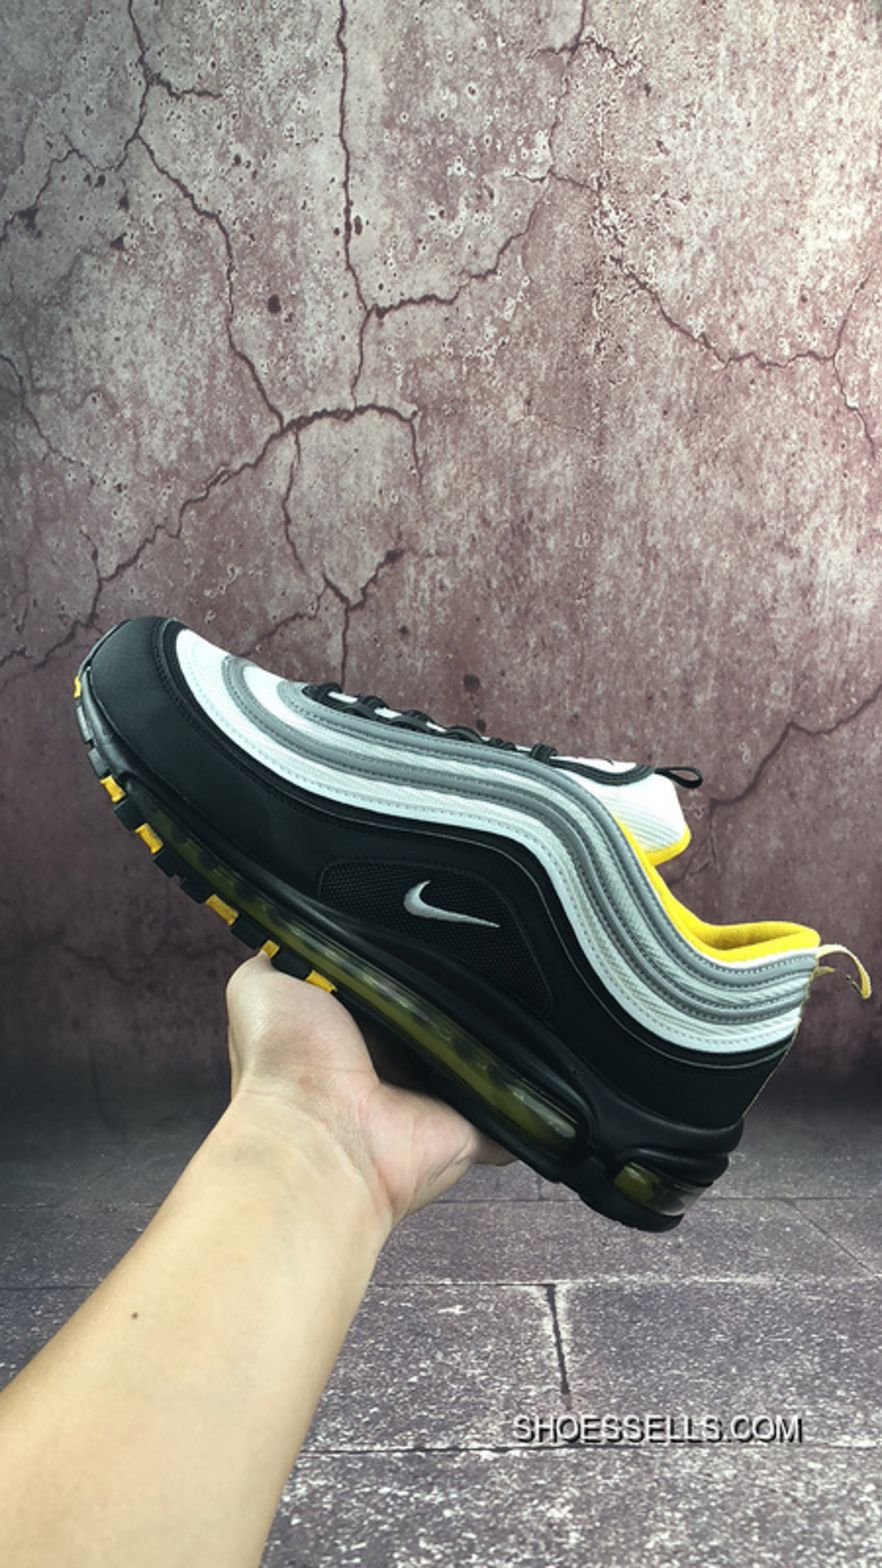 Nike Air Max 97 All Match Vintage Air Jogging Shoes Black Yellow White